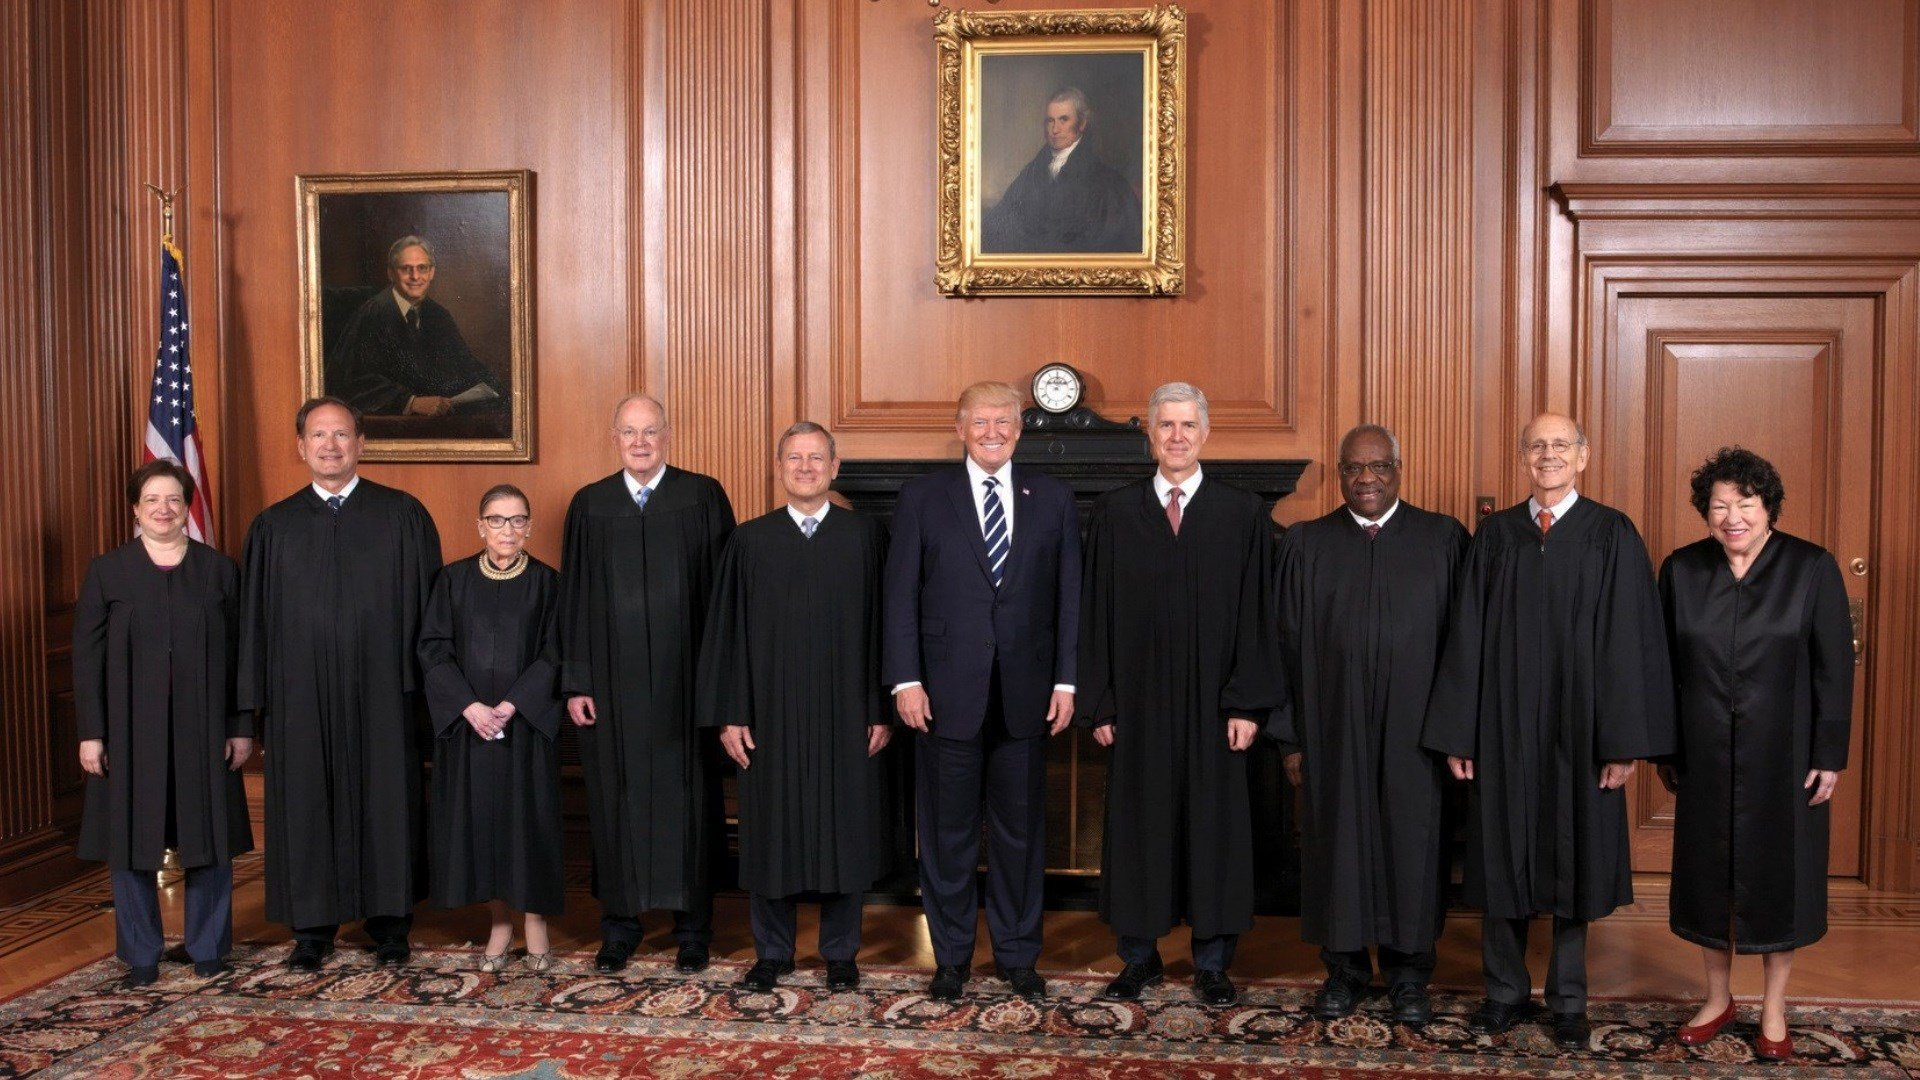 Donald Trump visits Supreme Court for ceremonial swearing in  of Justice Neil Gorsuch.